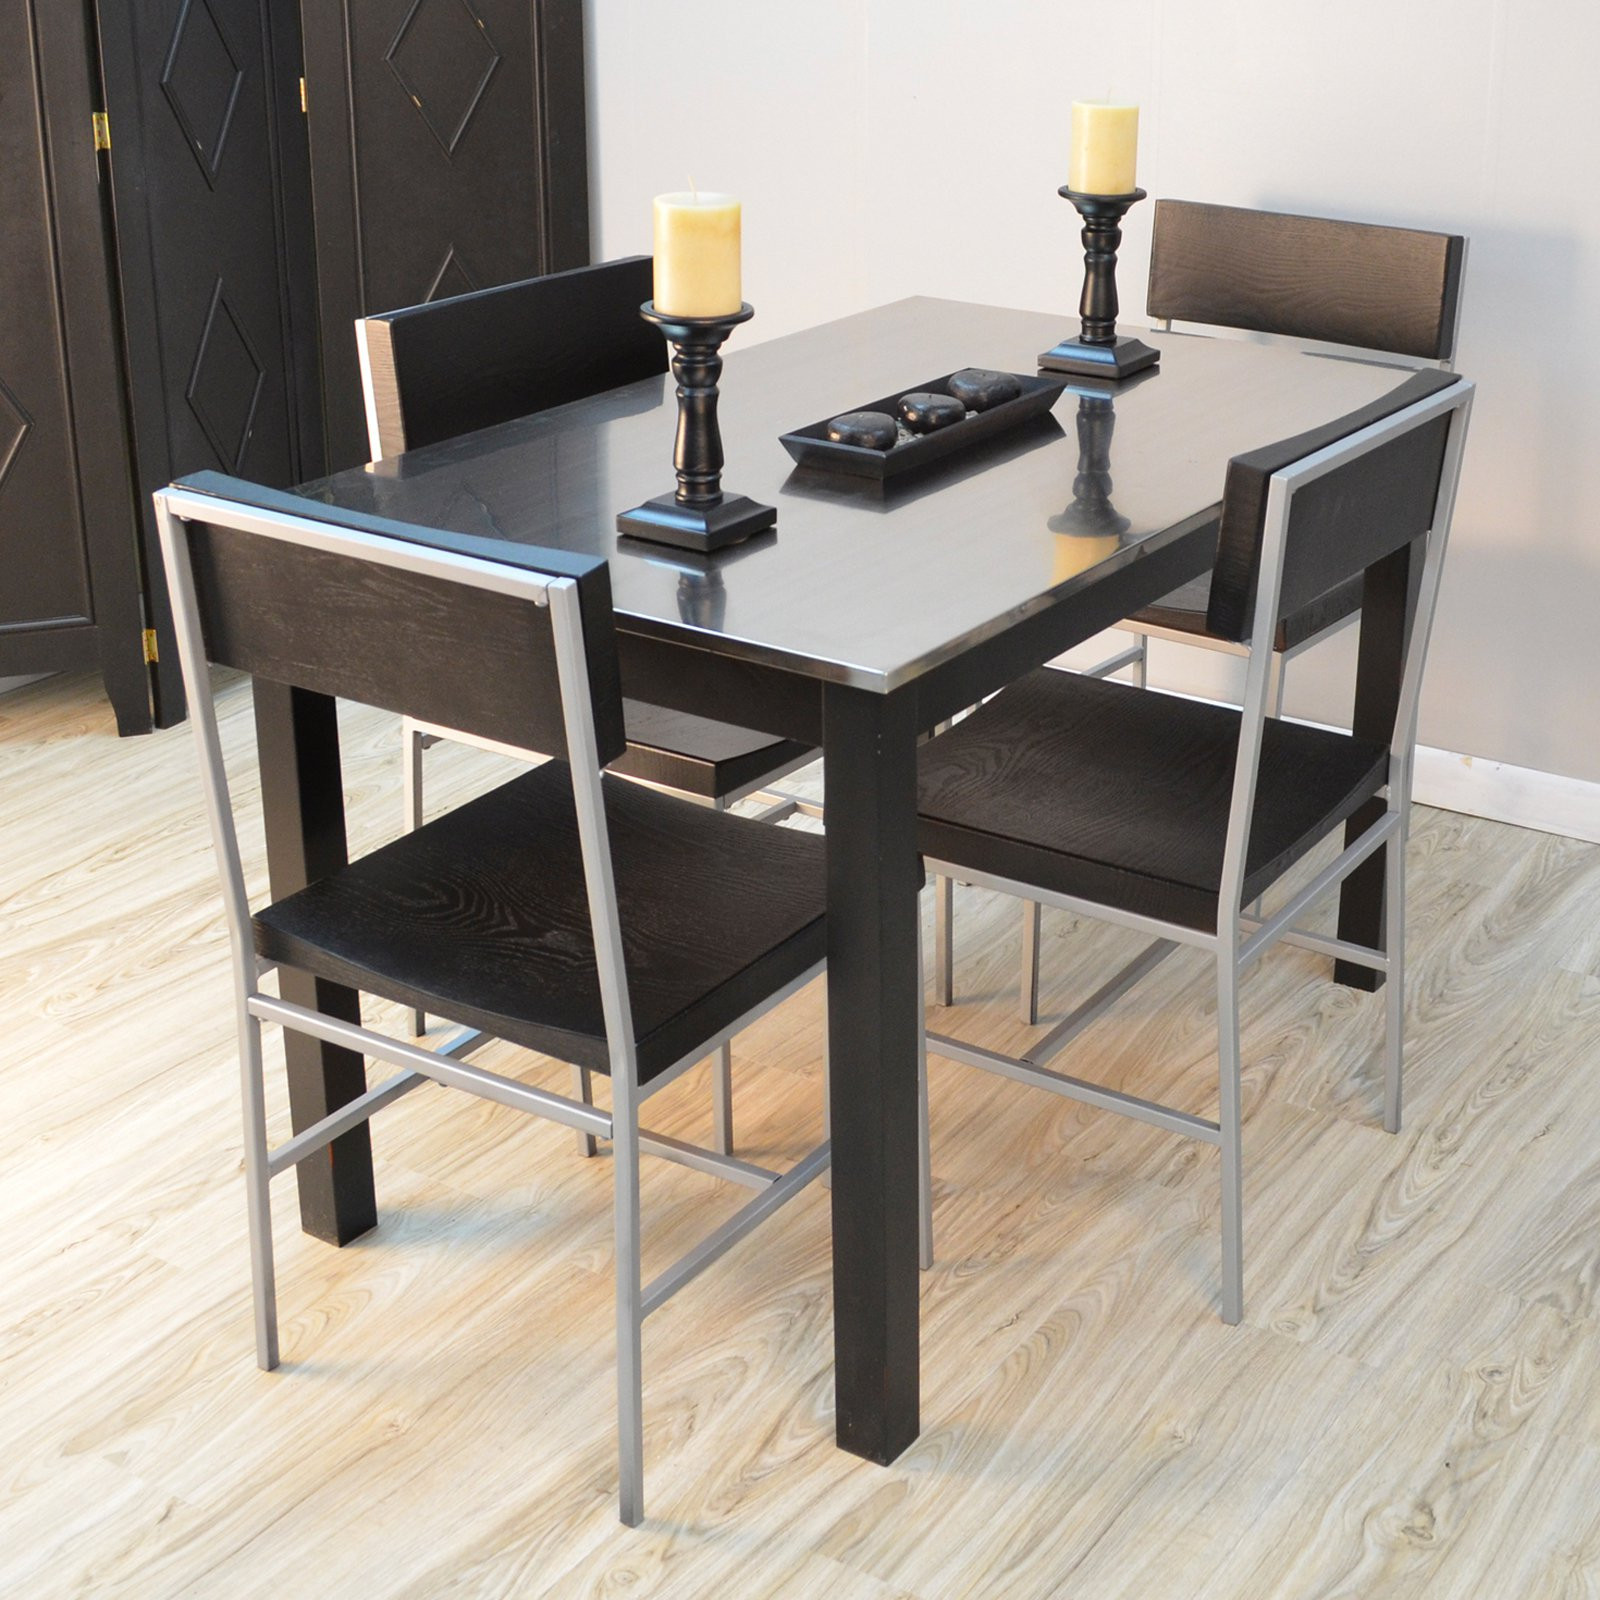 Best ideas about Stainless Steel Dining Table . Save or Pin Carolina Morgan Stainless Steel Top Dining Table Dining Now.